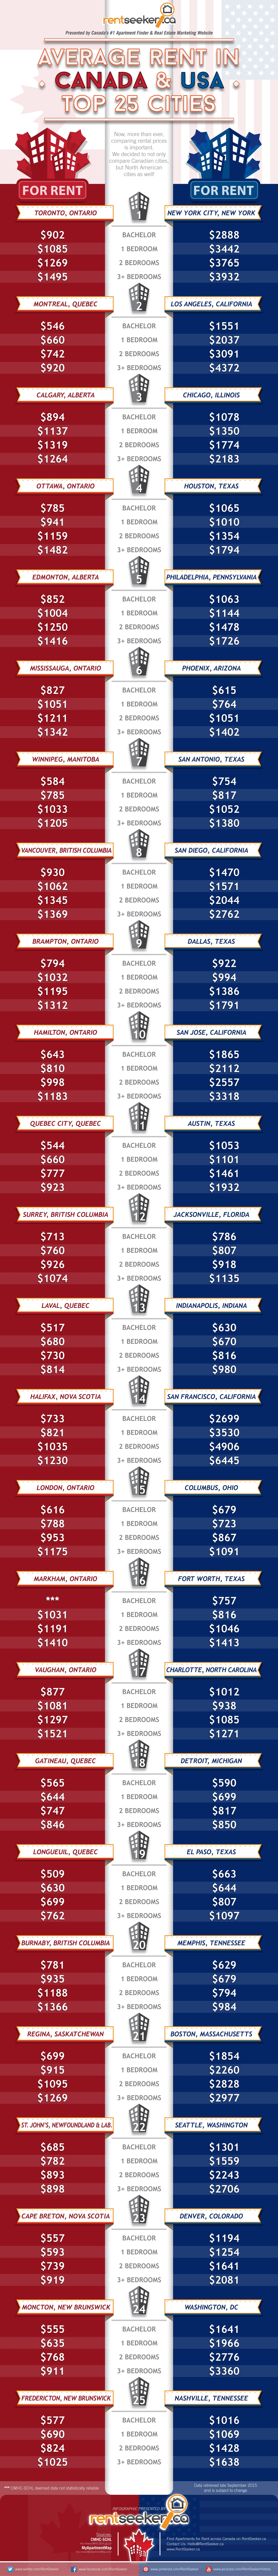 The Average Cost of Renting Apartments in Canada and the U.S.